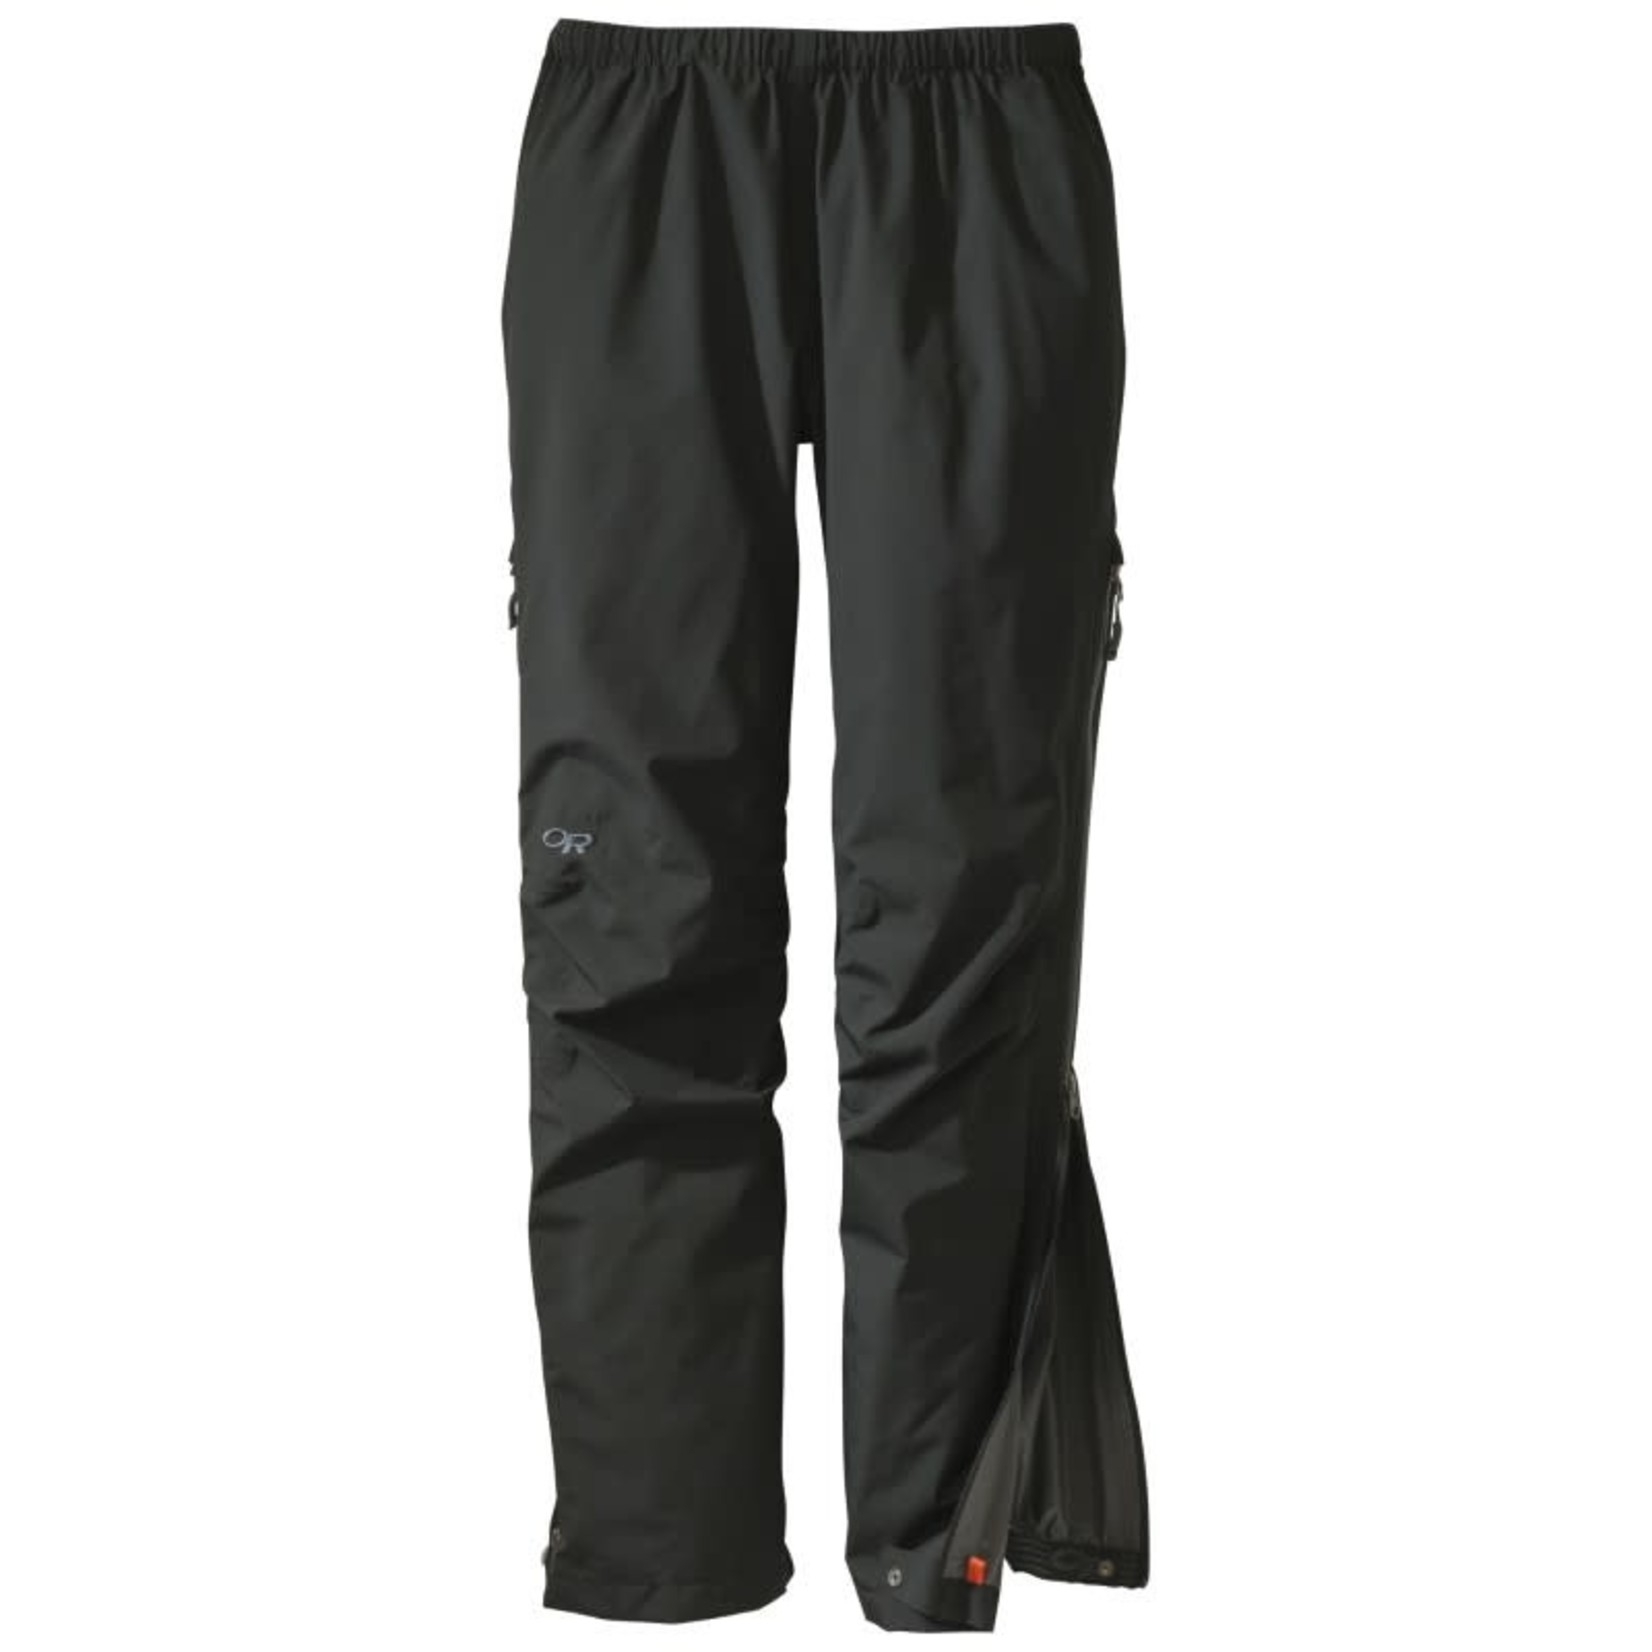 Outdoor Research Pantalon imperméable Outdoor Research Aspire - Femme